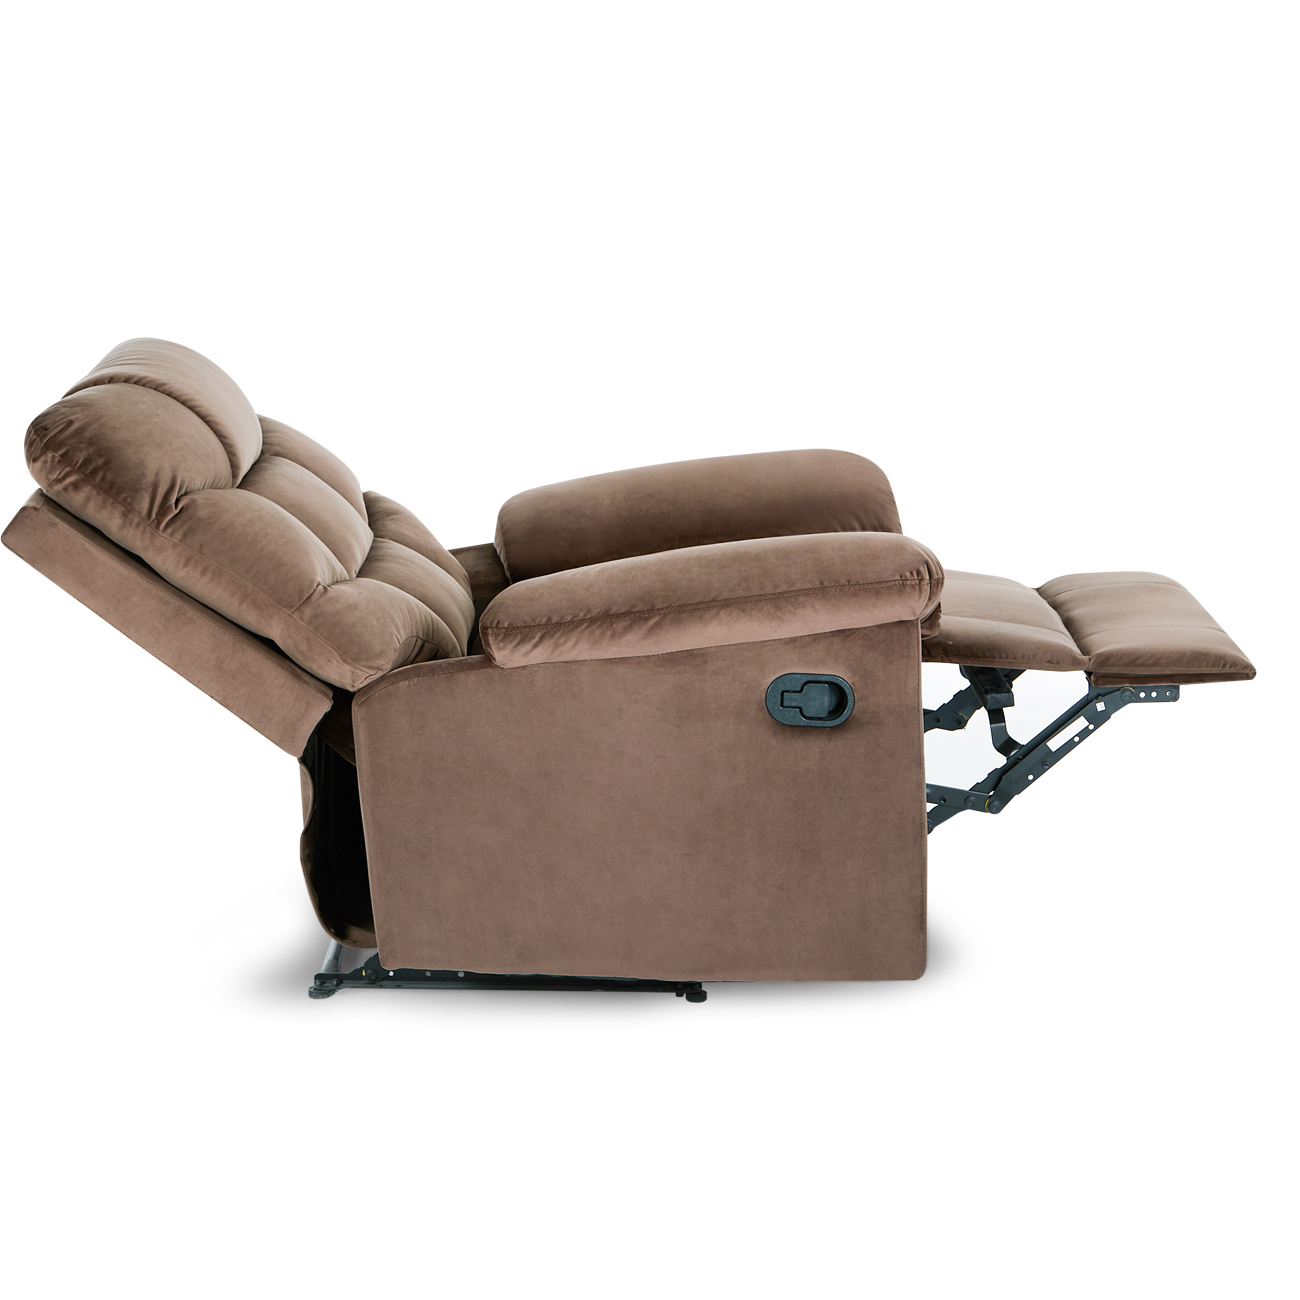 Belleze microfiber contemporary full recliner lounger high back extra padded overstuffed armrest backrest chair brown walmart com